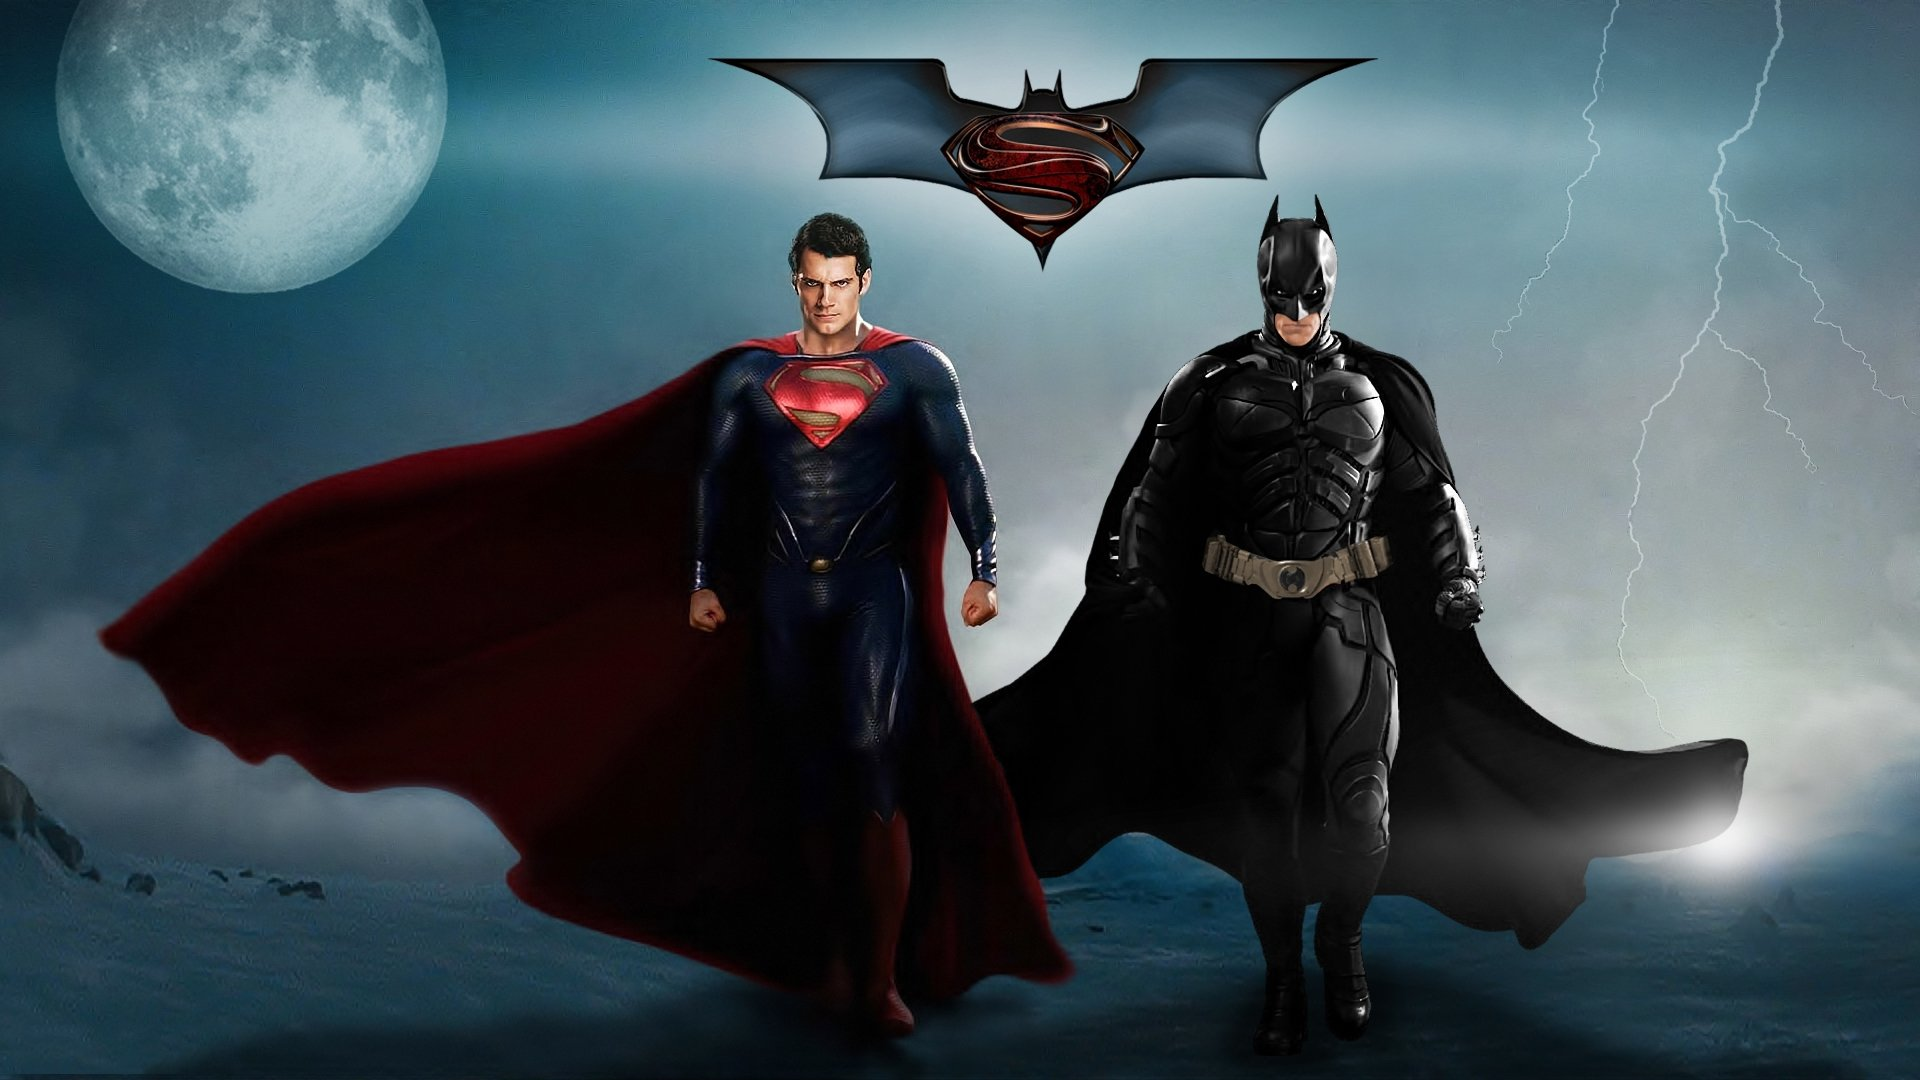 BATMAN V SUPERMAN Adventure Action Dc Comics D C Superman Batman Dark 1920x1080